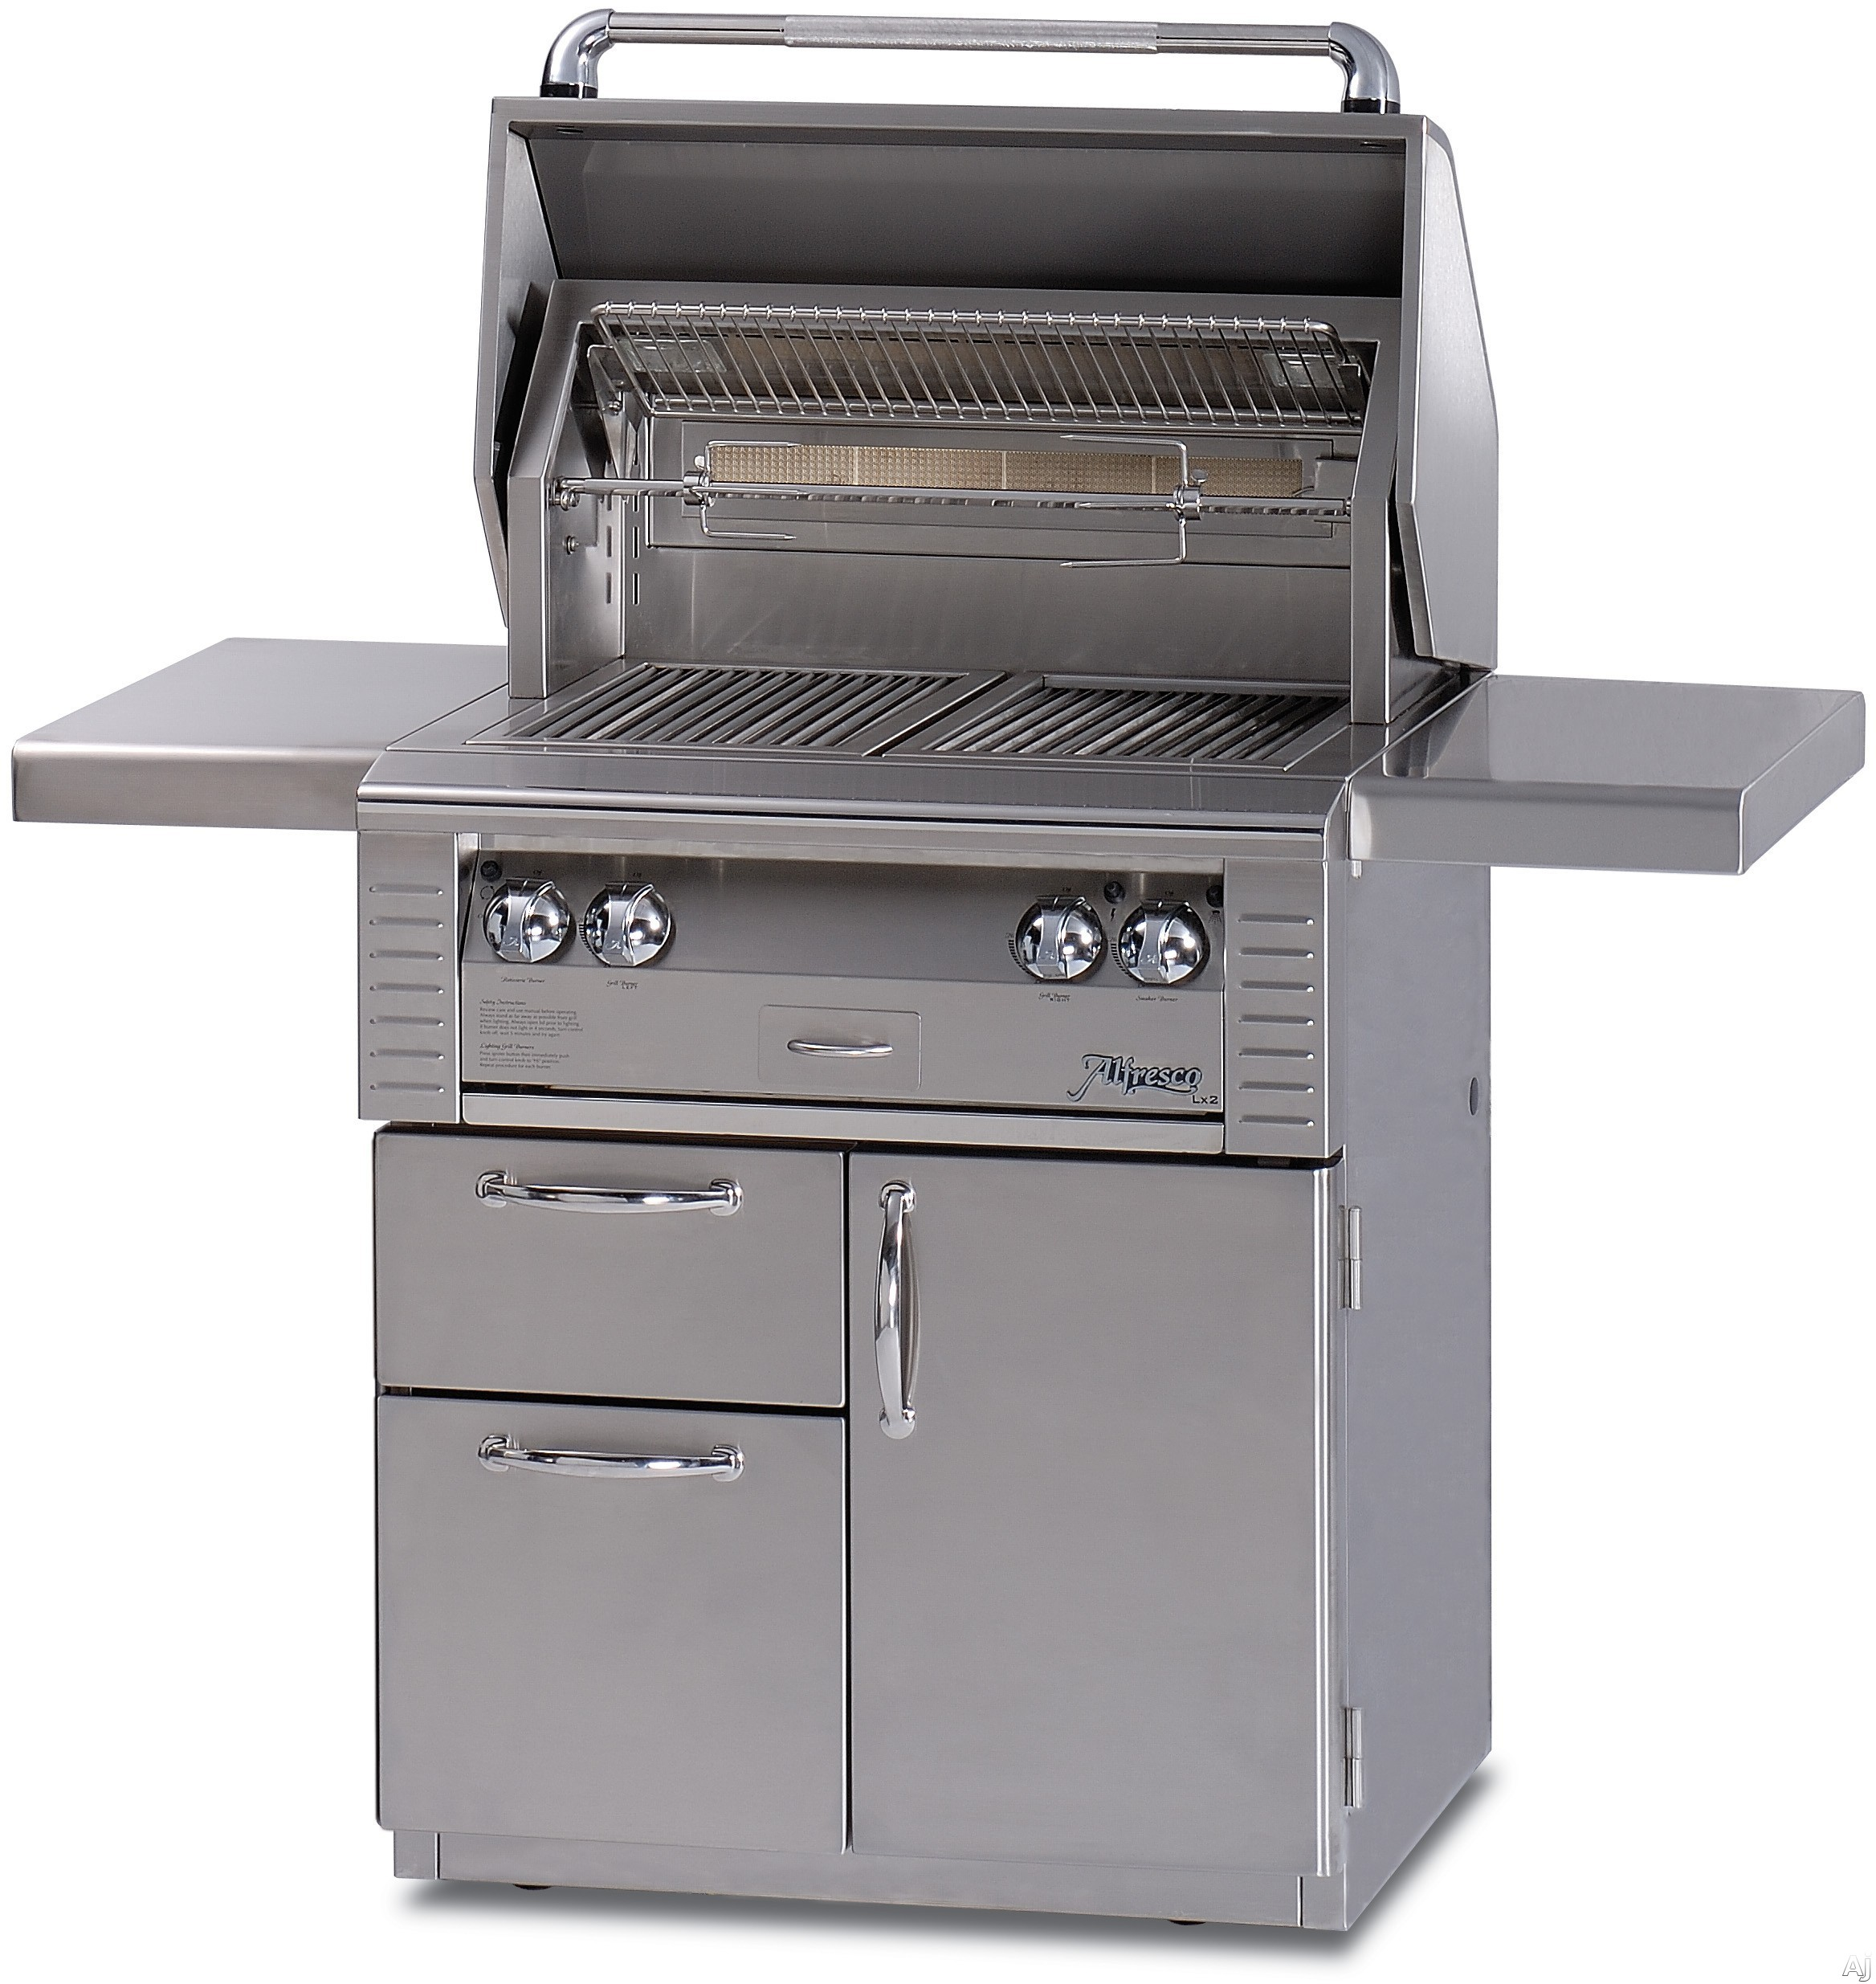 Alfresco alx ircd quot freestanding gas grill with sq